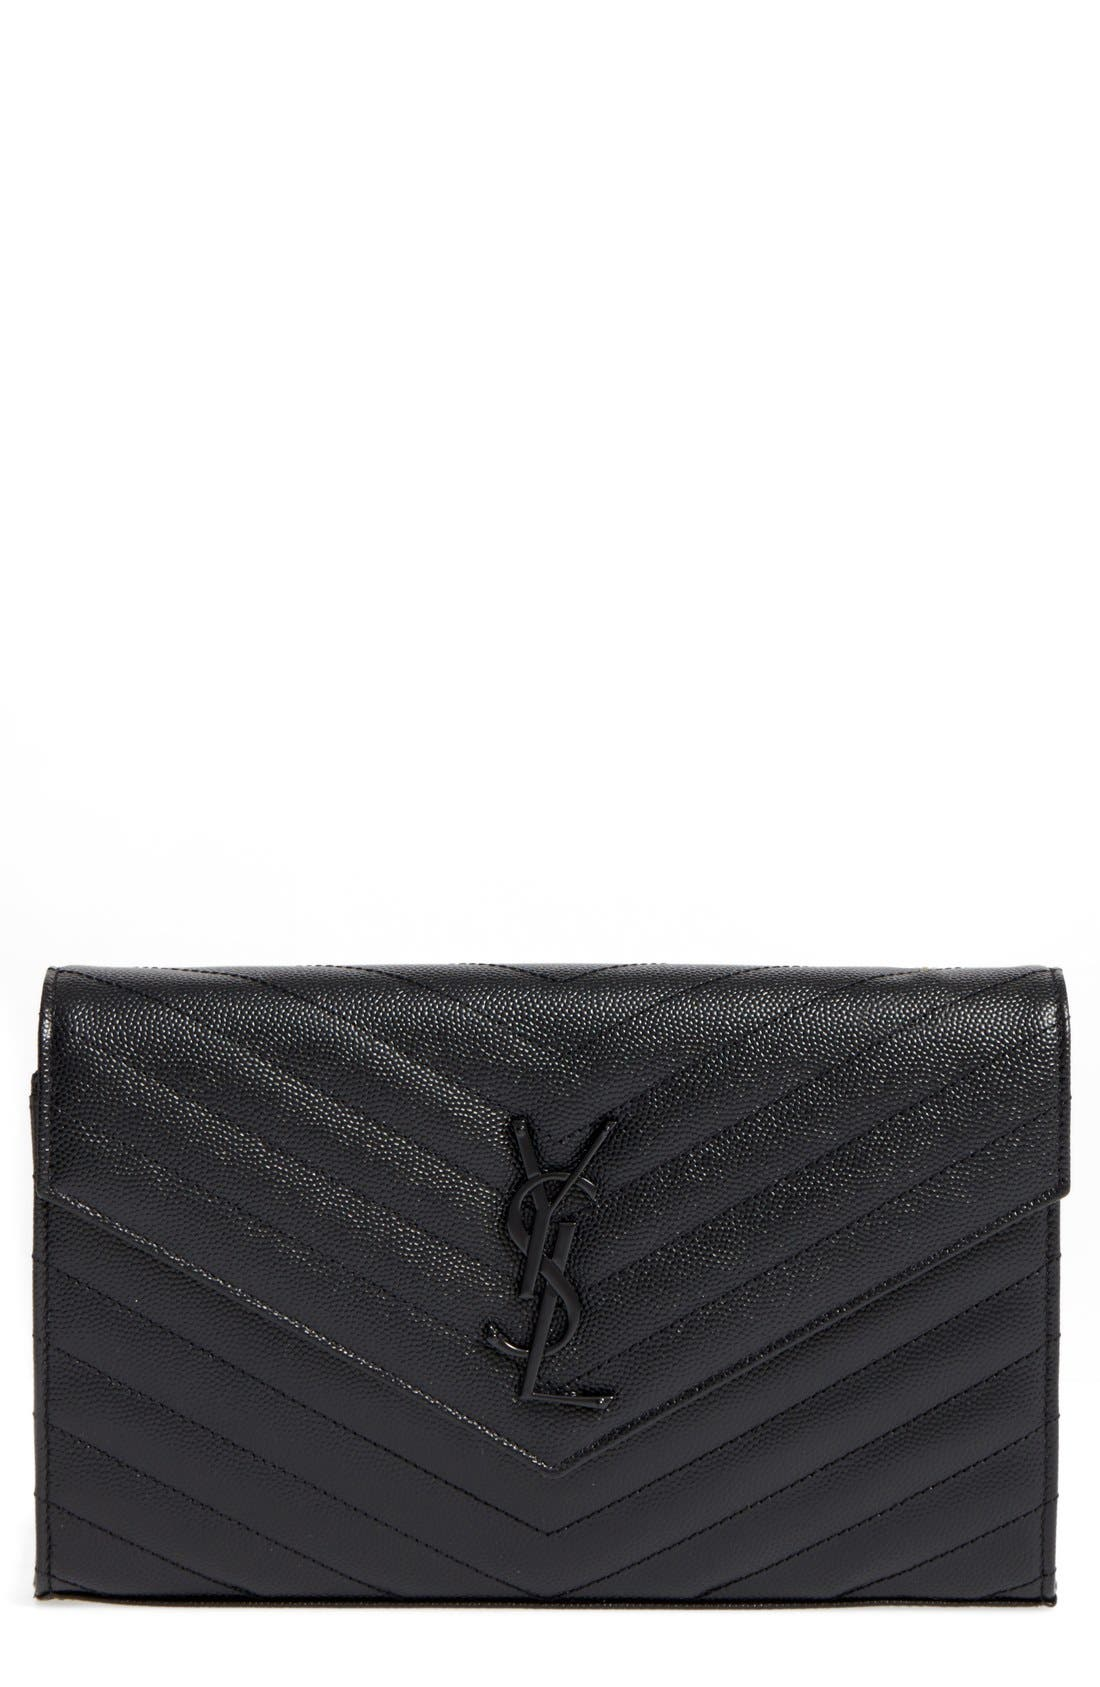 Main Image - Saint Laurent Monogram Quilted Leather Wallet on a Chain